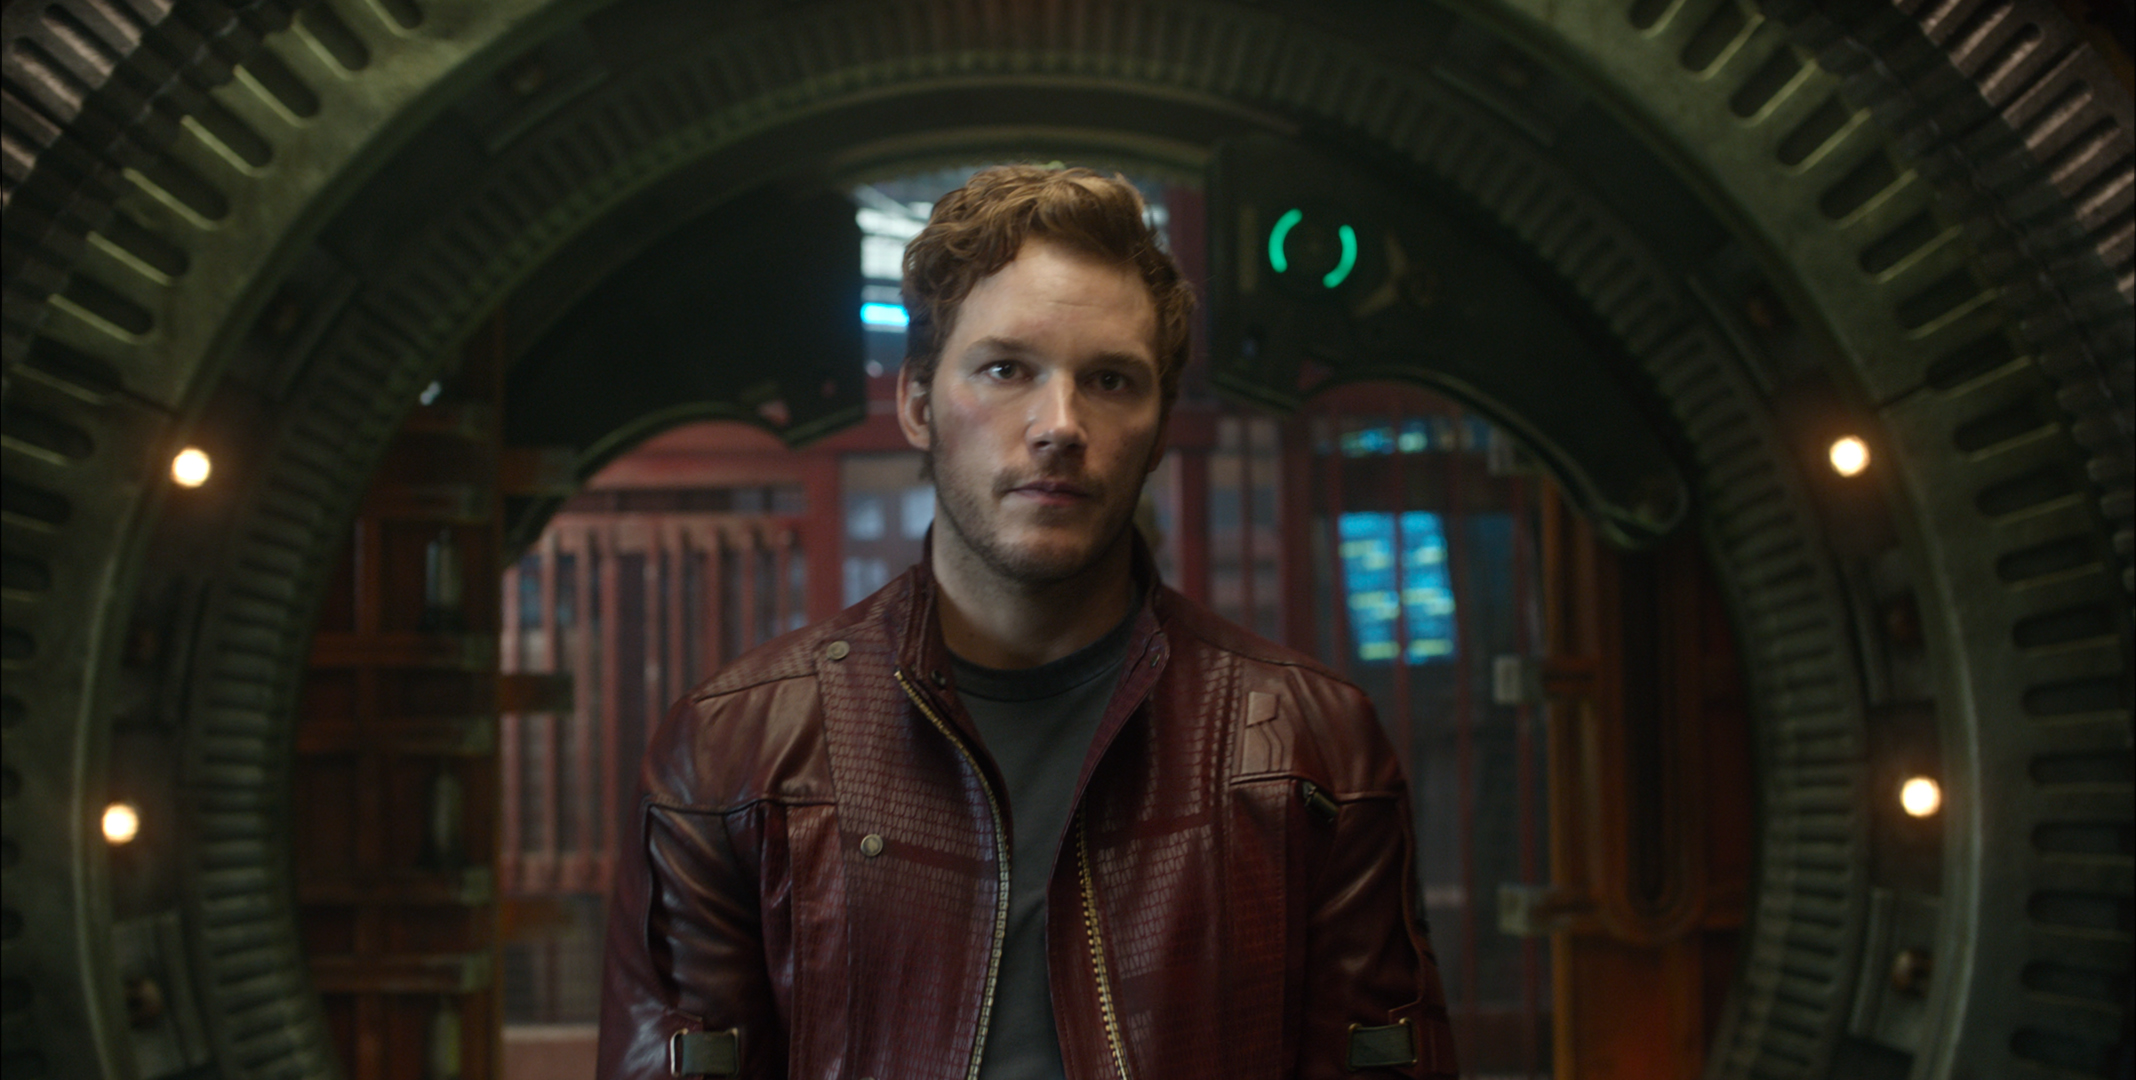 the_guardians_of_the_galaxy_11.jpg